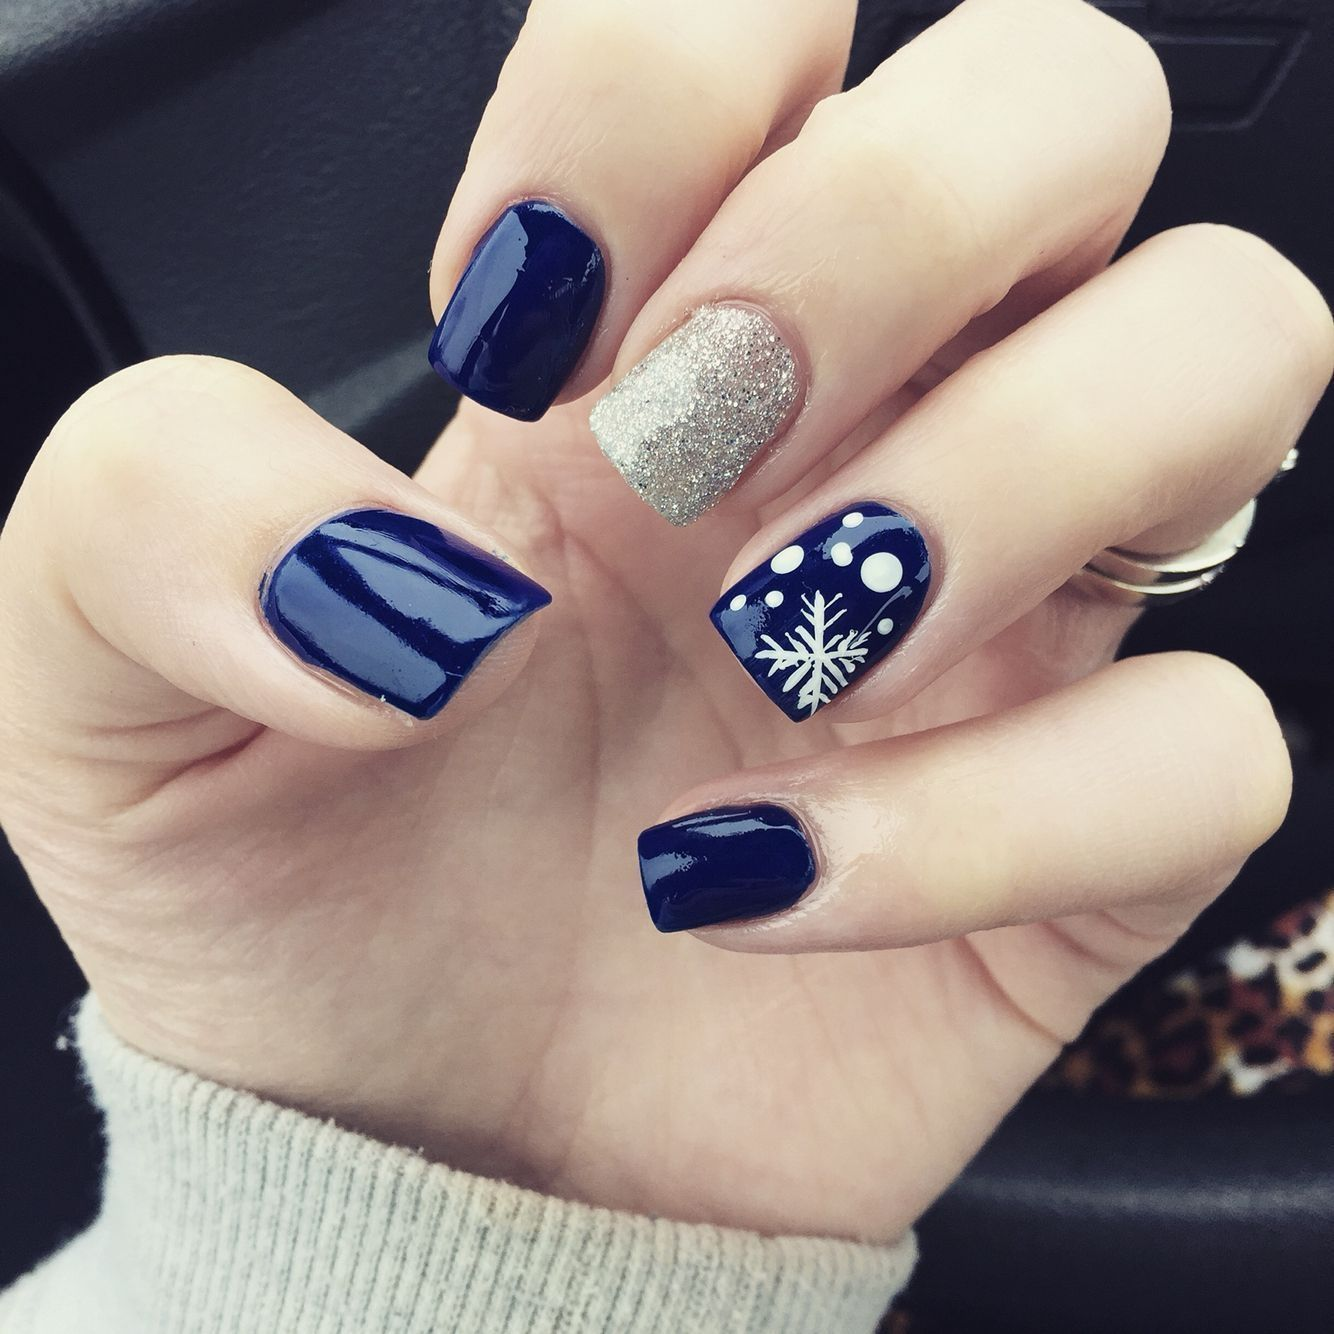 39 Amazing Nail Art Design For Holiday And Winter With Images